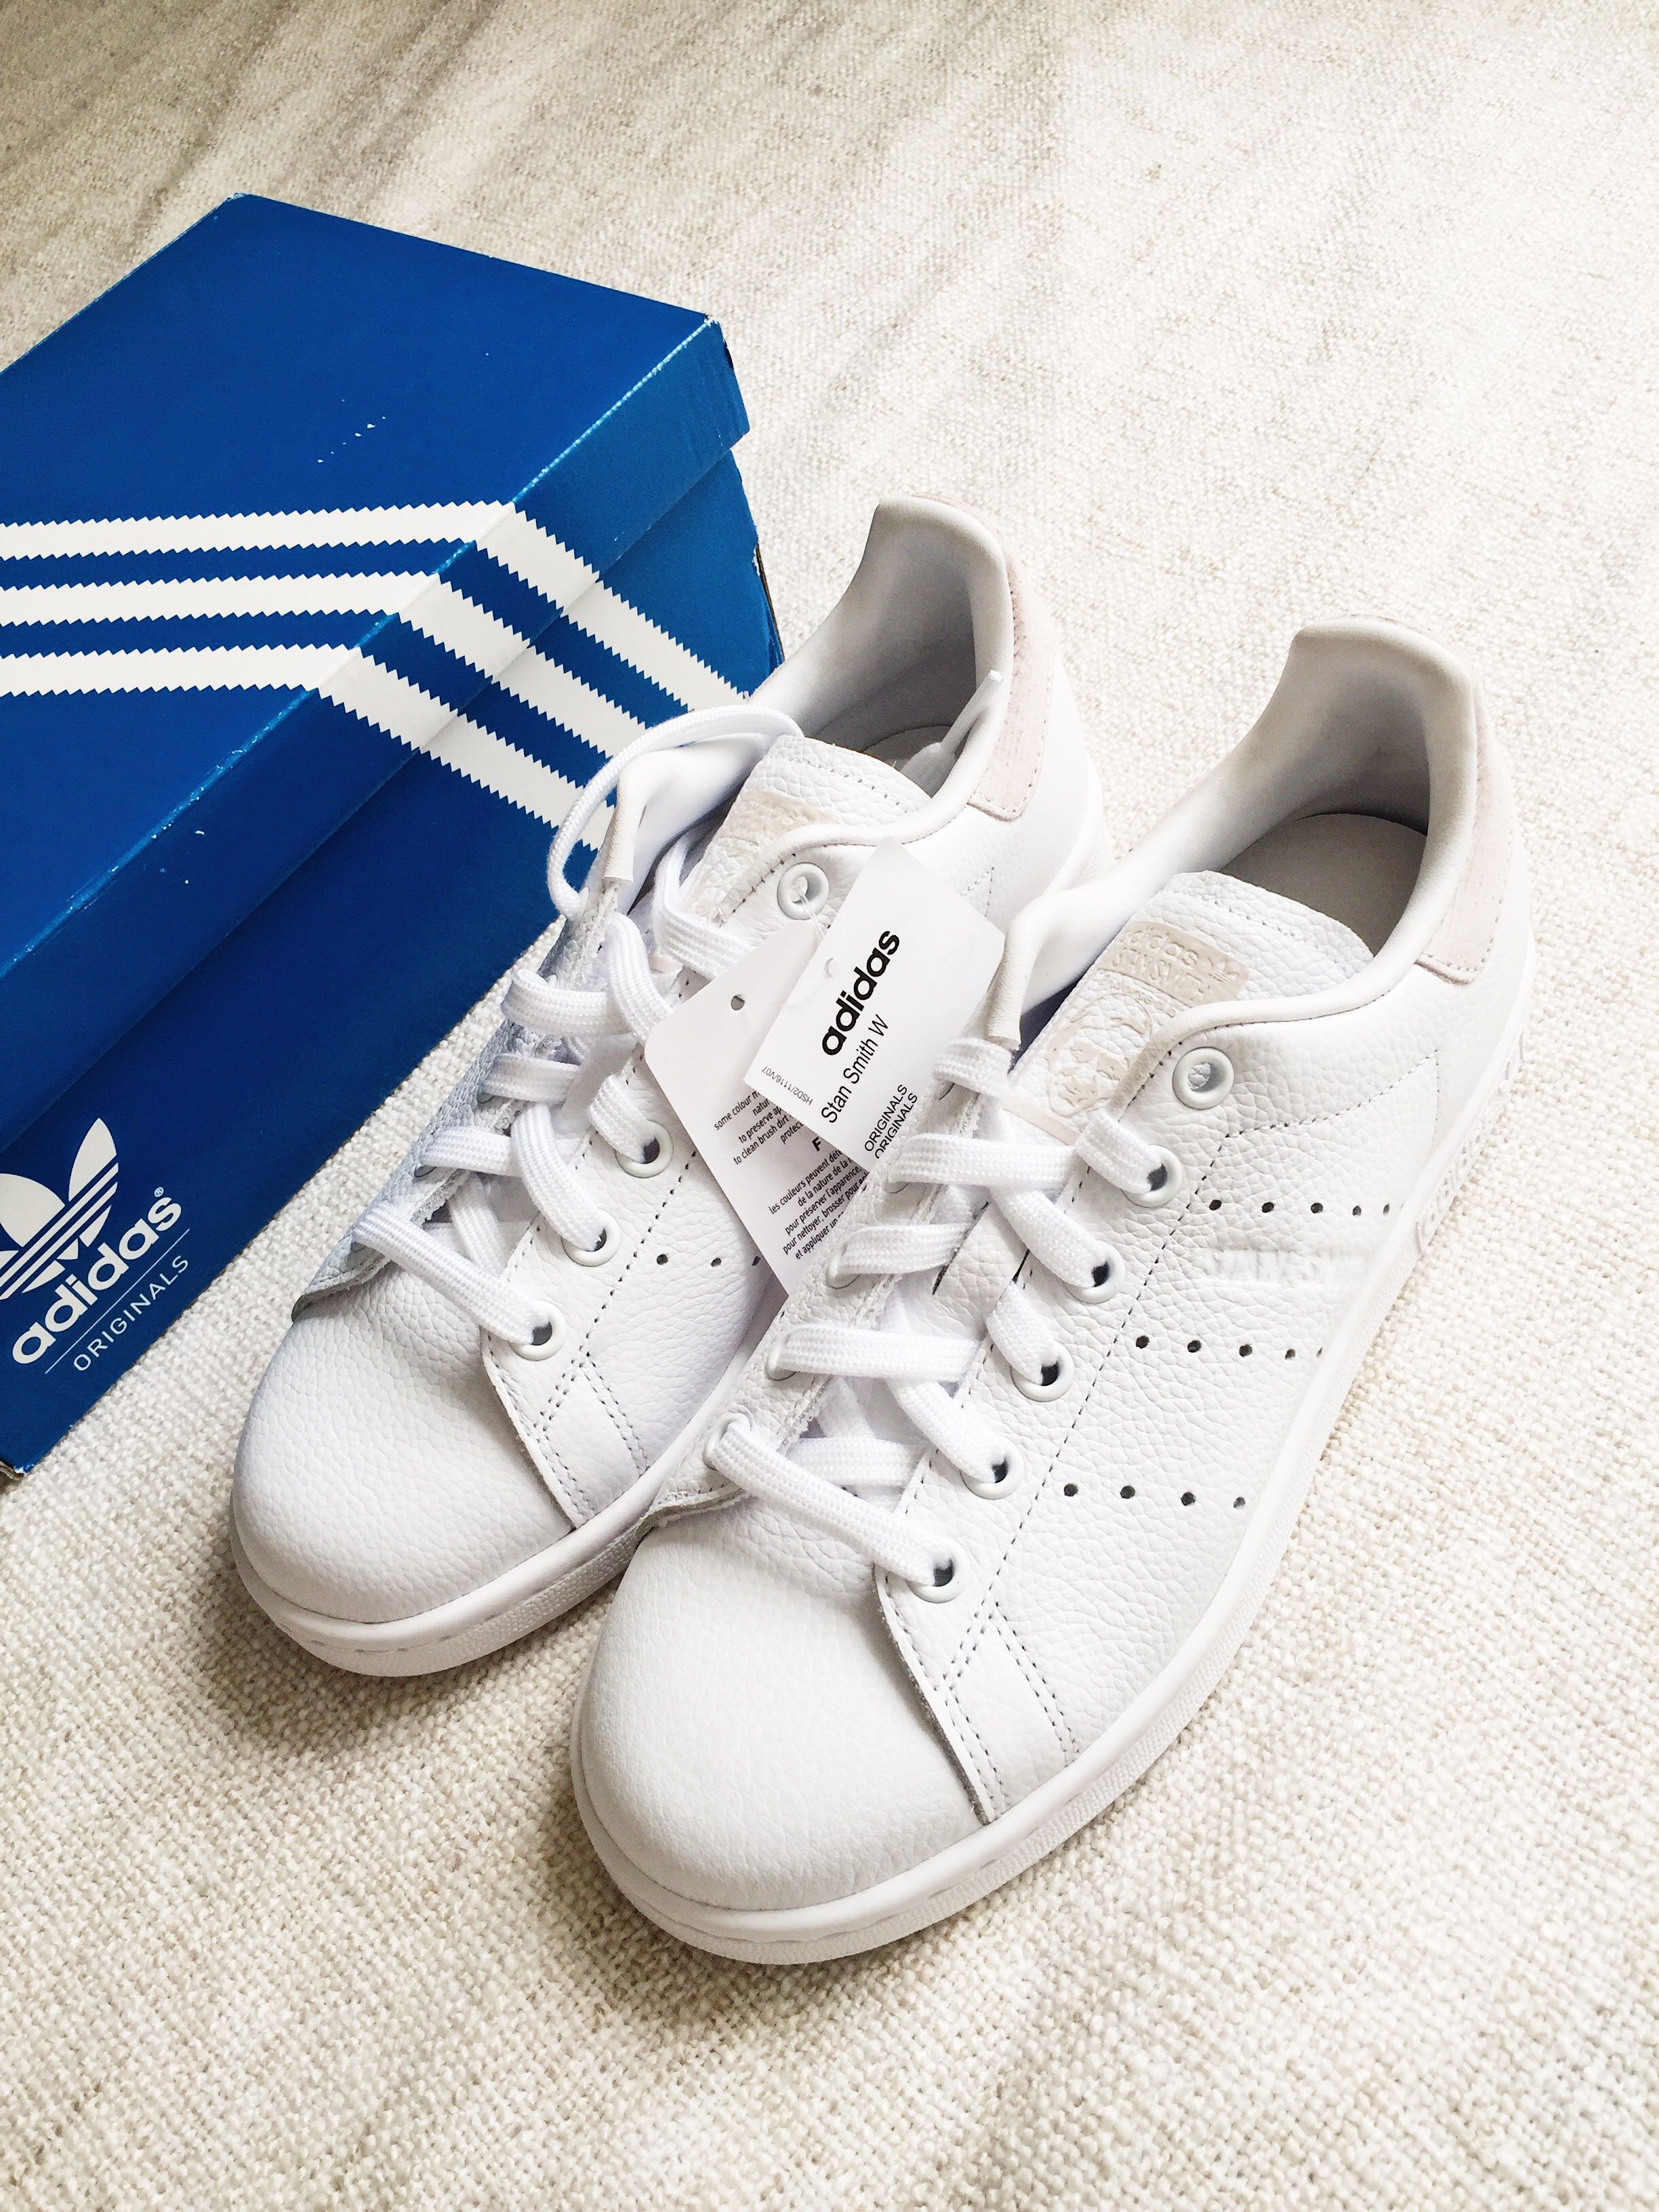 promo code 944f4 93a2e Adidas Originals Stan Smith W White Orchid Tint Women Shoes B41625 ...